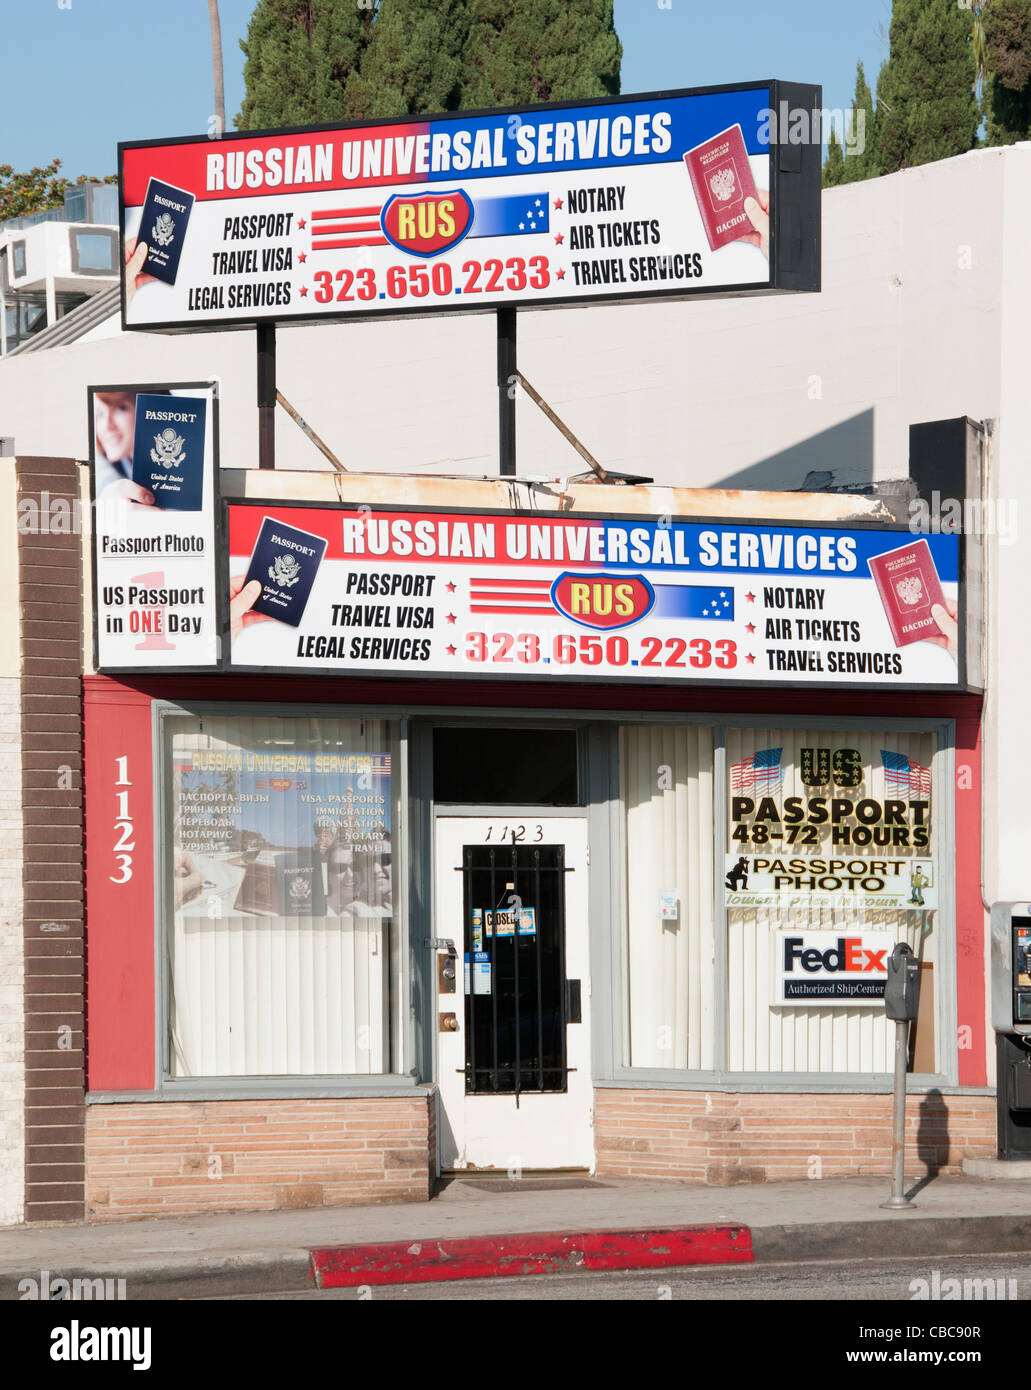 Russian Universal Services Passport Travel Visa Legal West Hollywood California United States Los Angeles - Stock Image